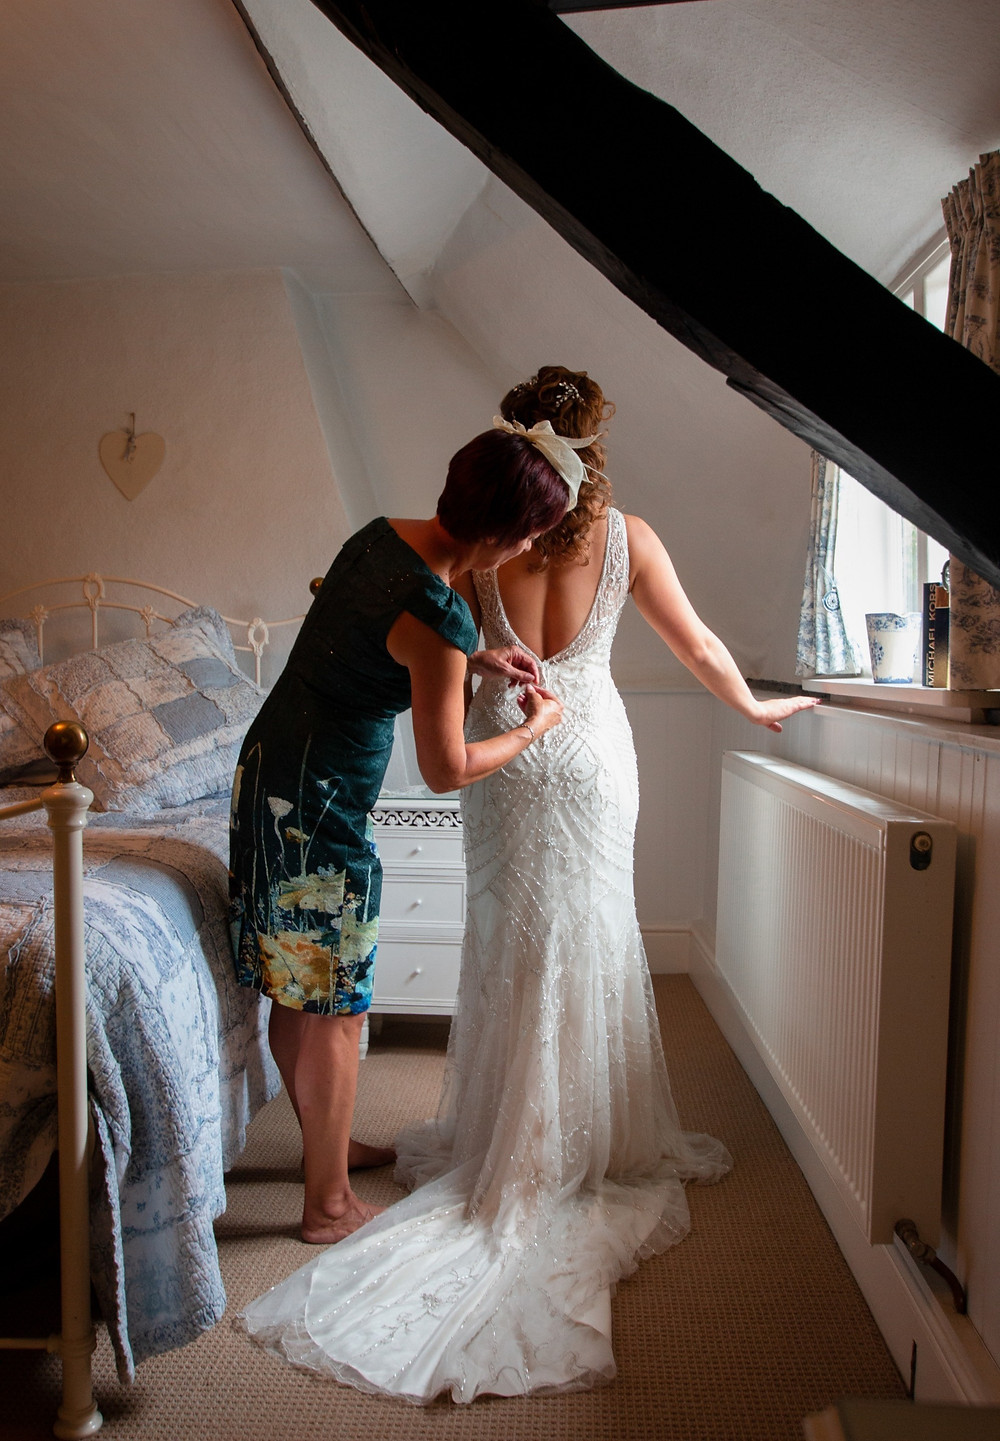 Mother of the bride helping bride into dress